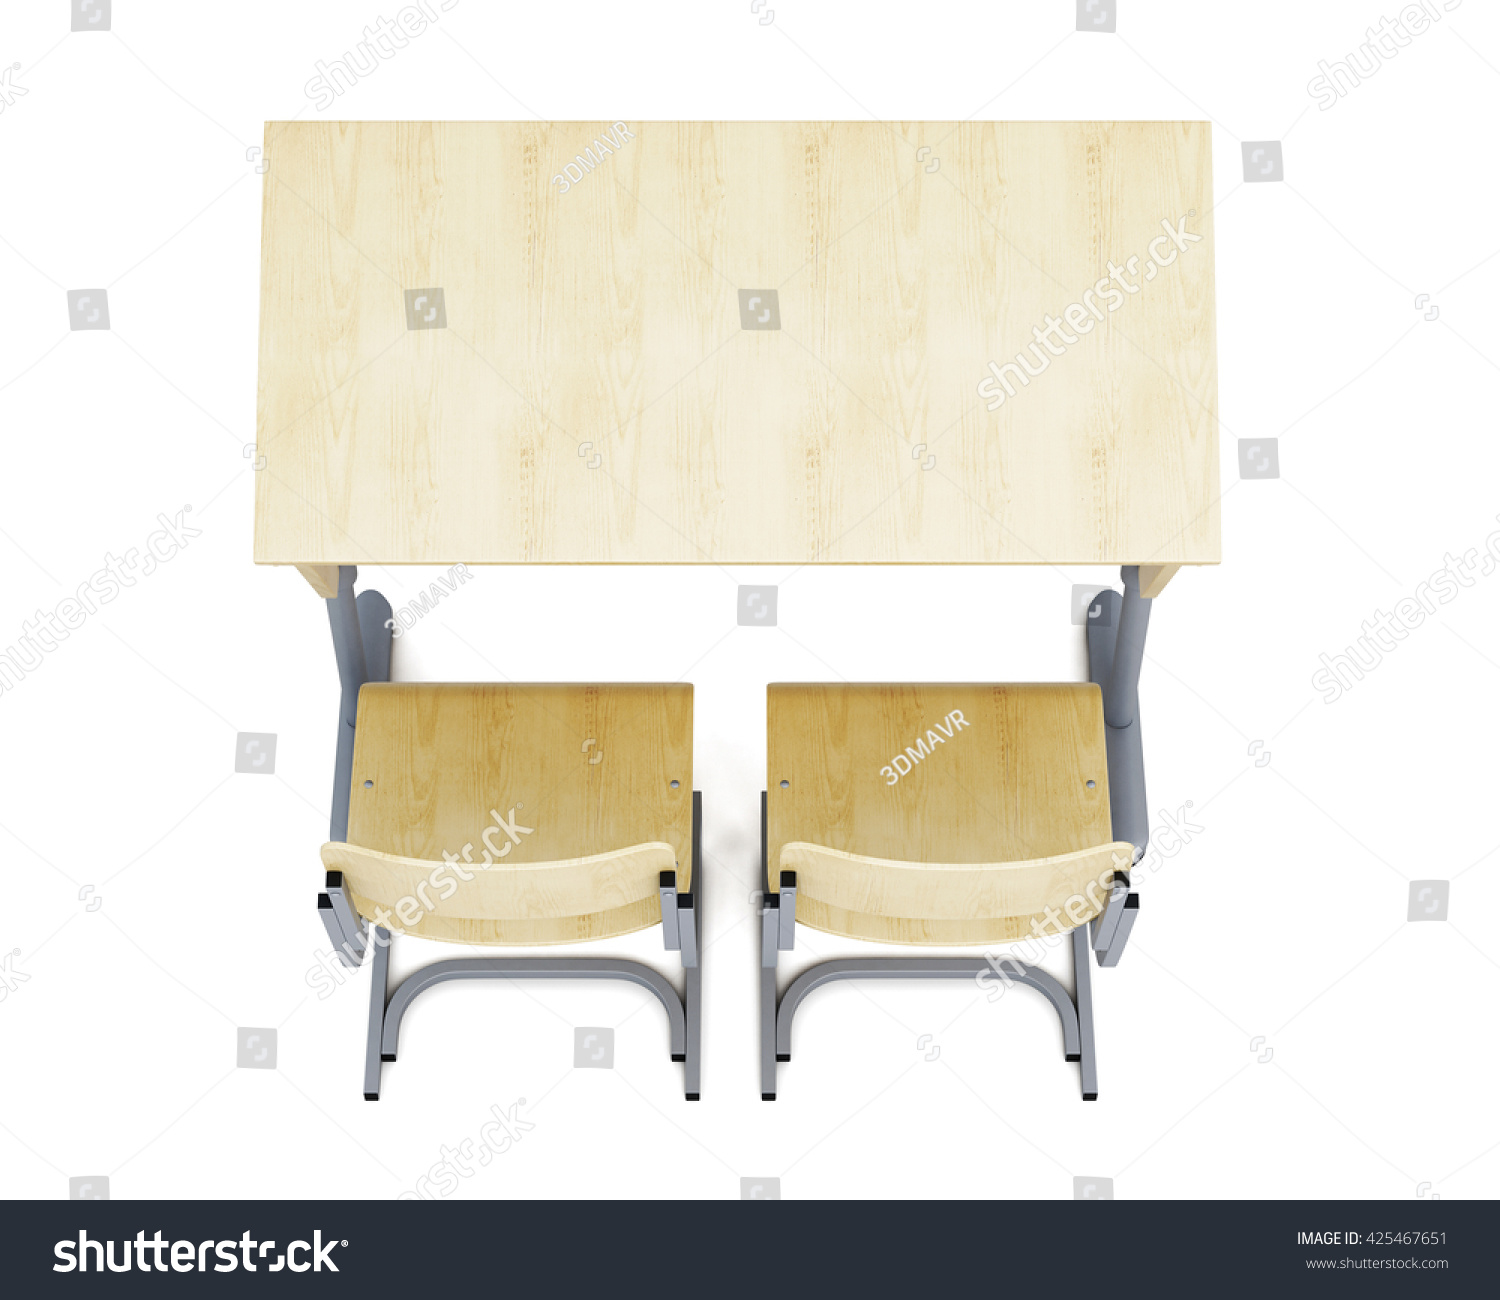 Top View Of A School Desk And Chairs Isolated On White Background. 3d  Rendering.